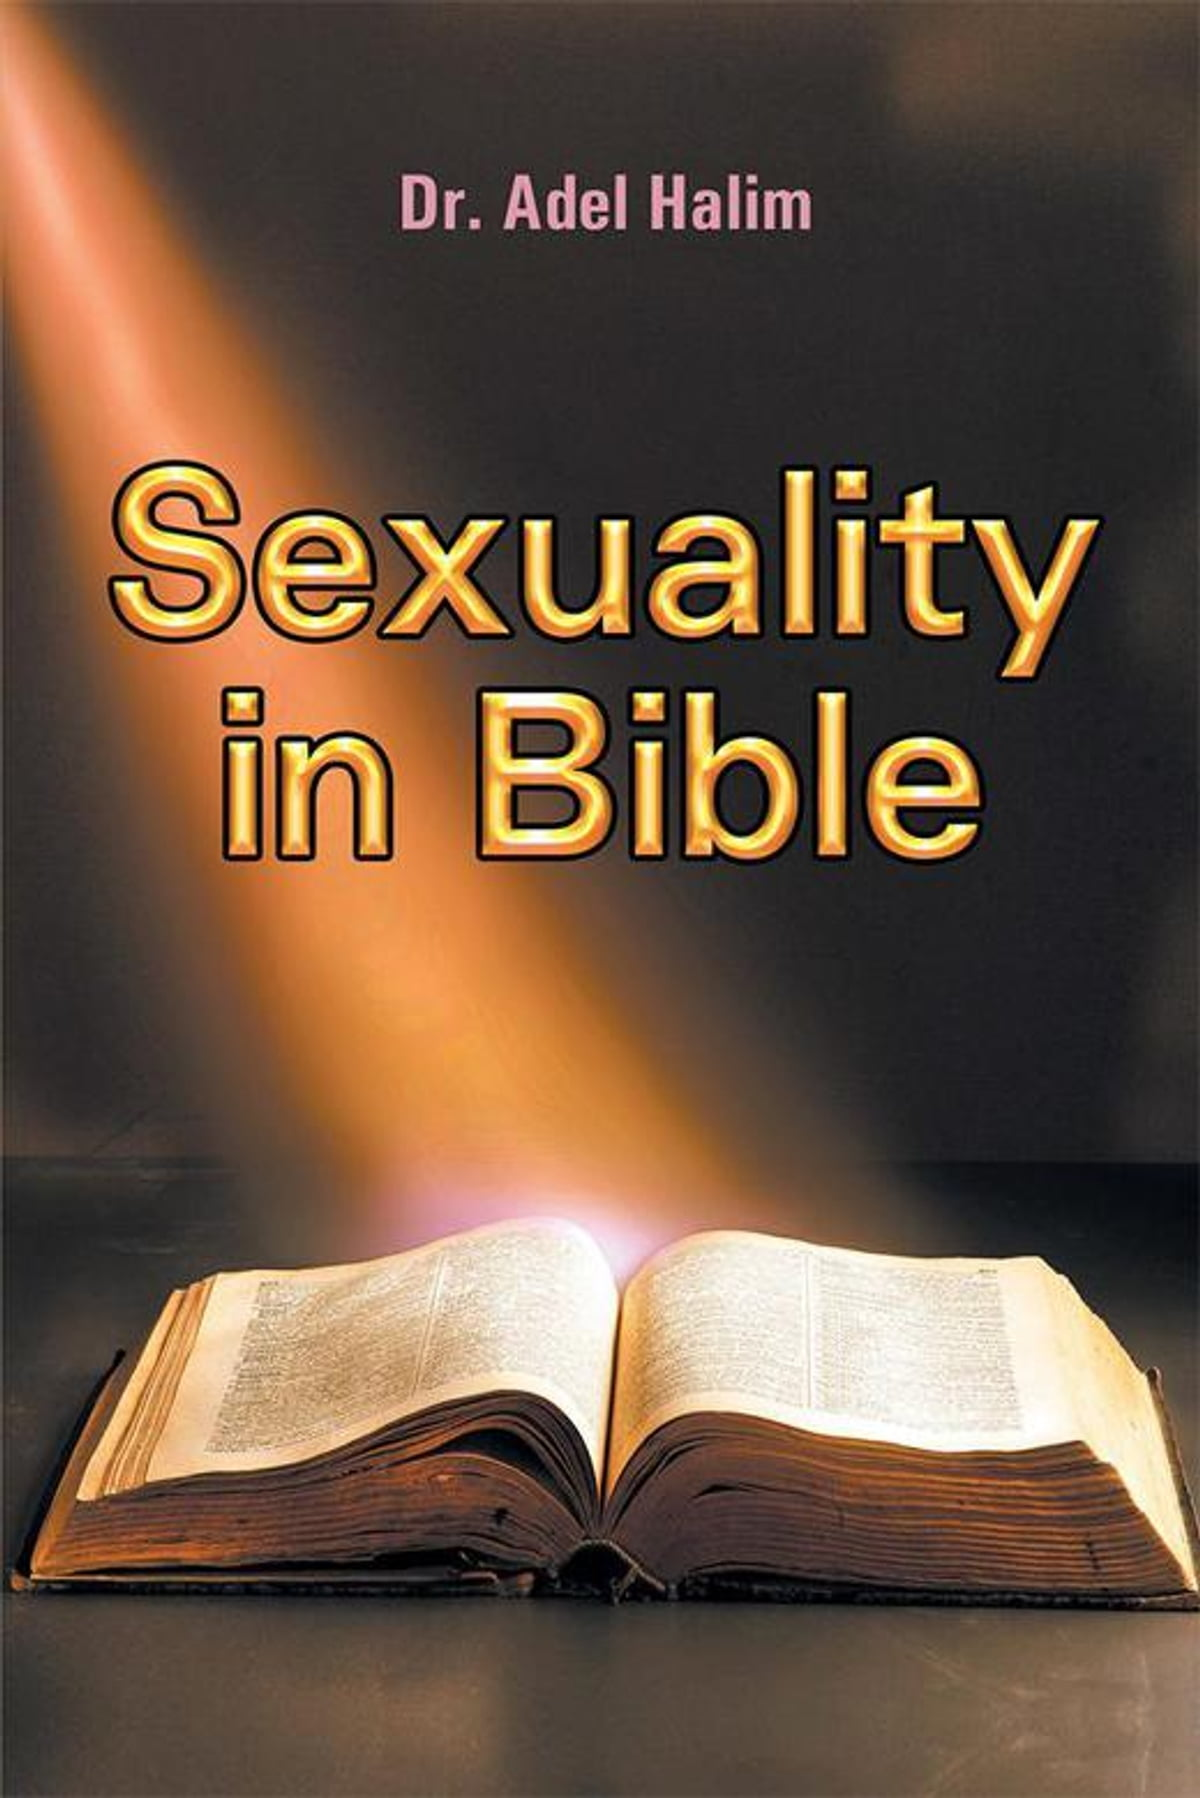 Sexual meanings in the bible